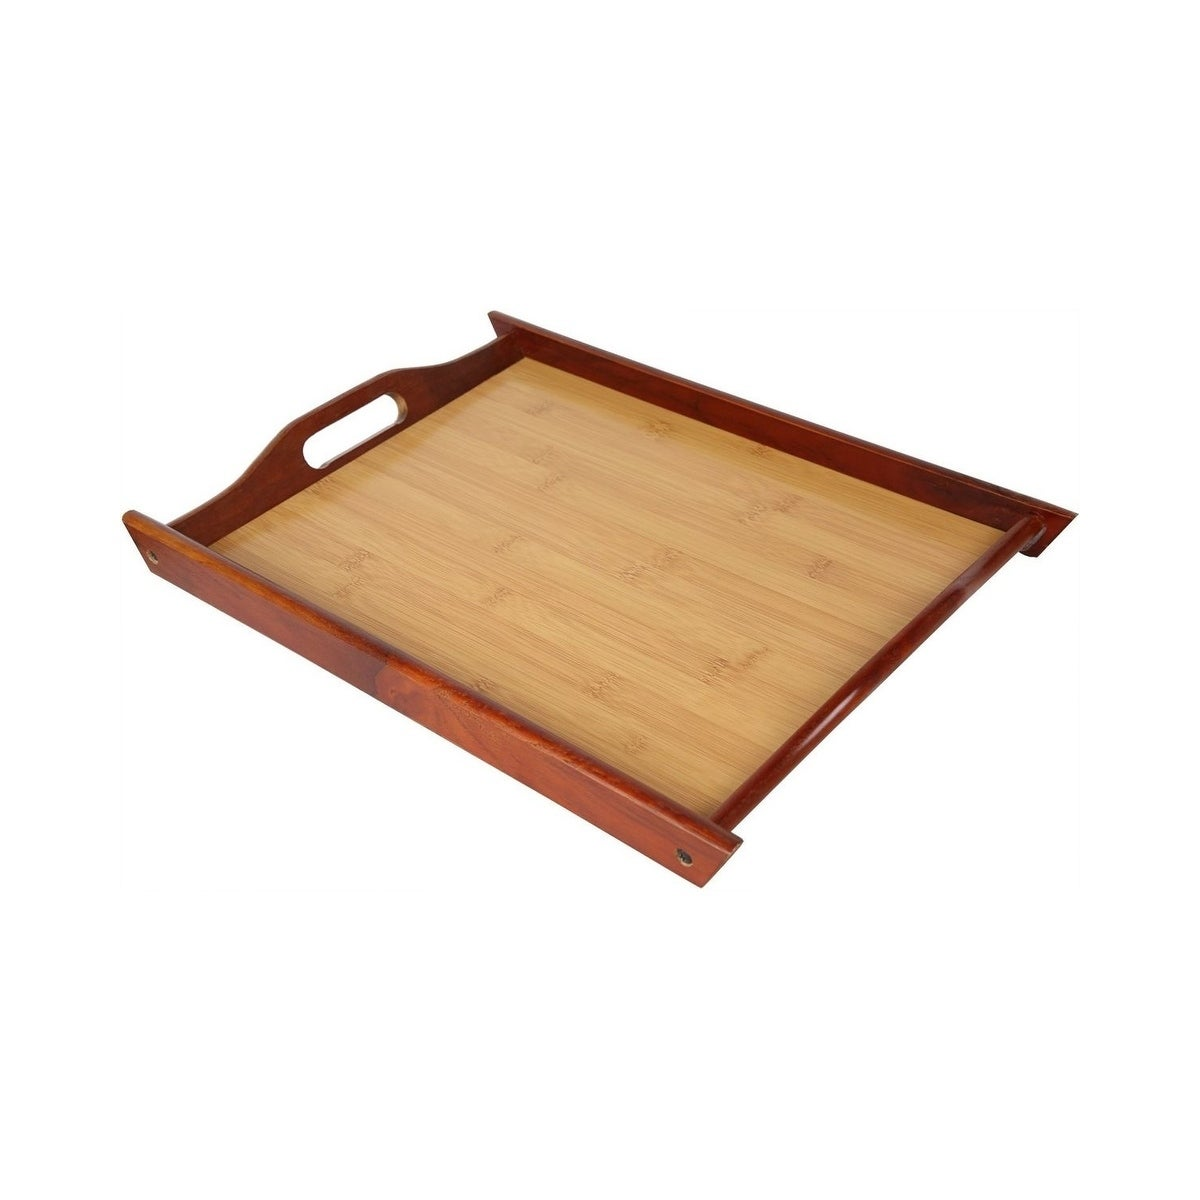 12 x 6 inch Wooden Serving Tray for Kitchen Serving//Dining